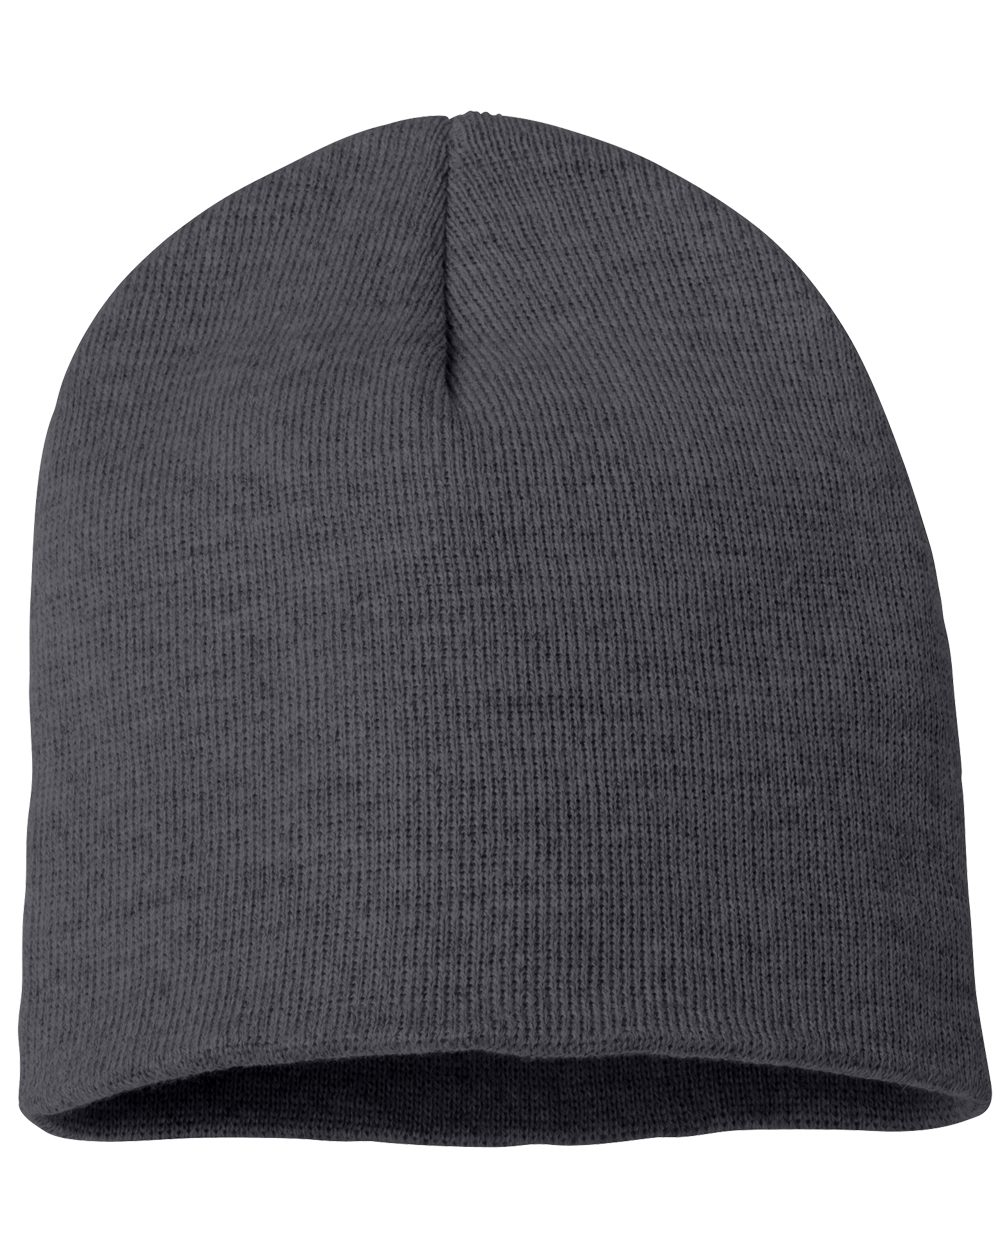 Sportsman Cap SP08 8  Knit Beanie